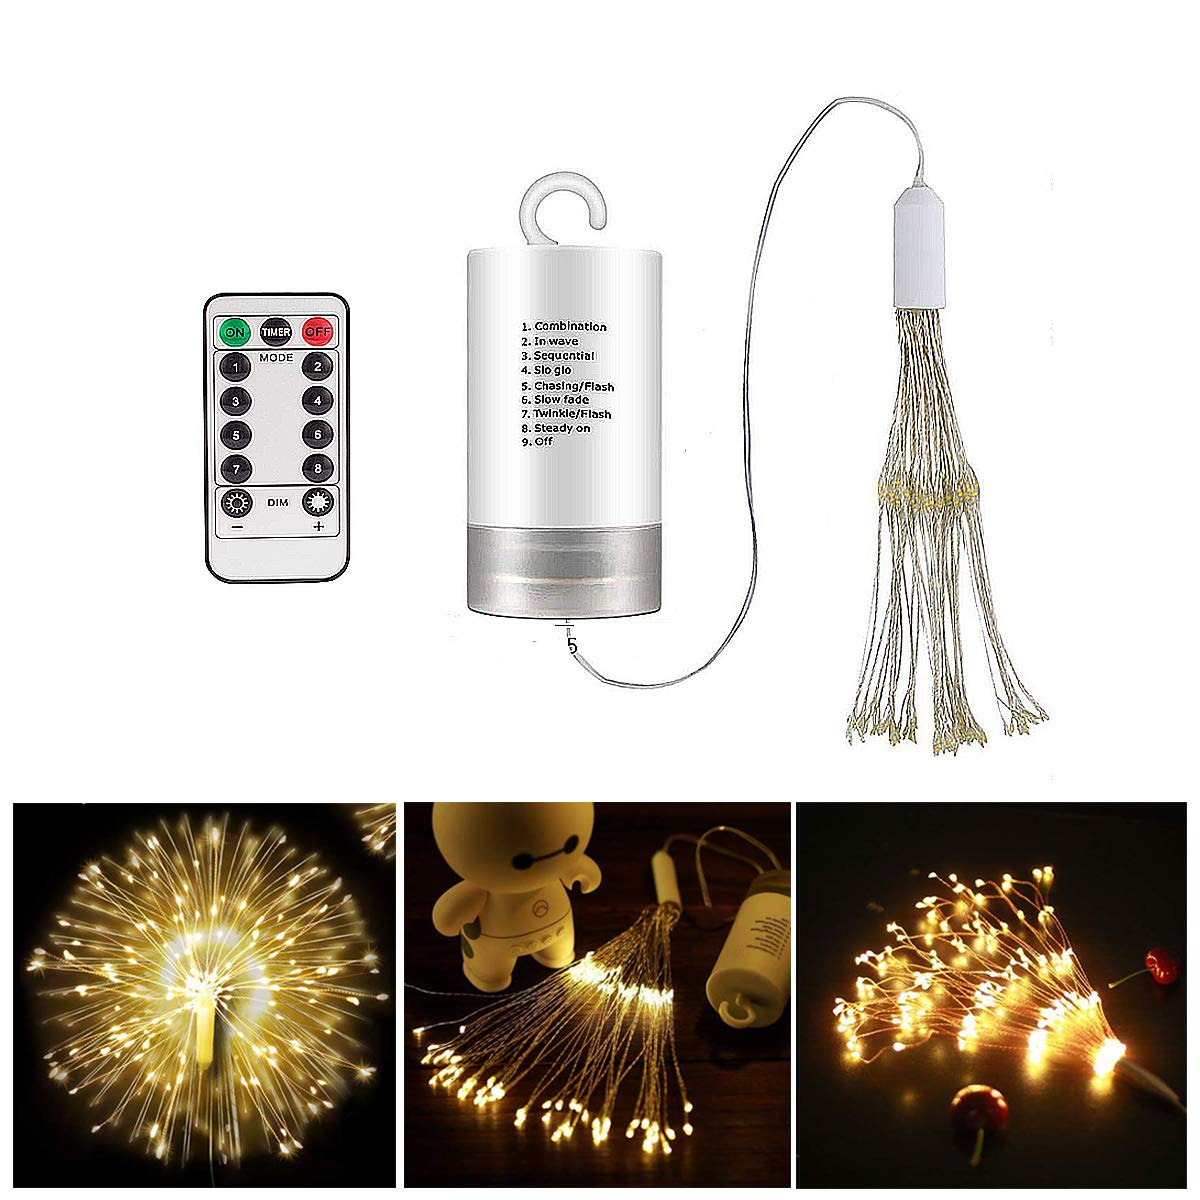 8 Modes Dimmable Fairy Lights with Remote Control Battery Operated Hanging Starburst Lights with 120 LED Waterproof for Parties Home Outdoor Decoration Firework Lights LED String Lights 2 Pack